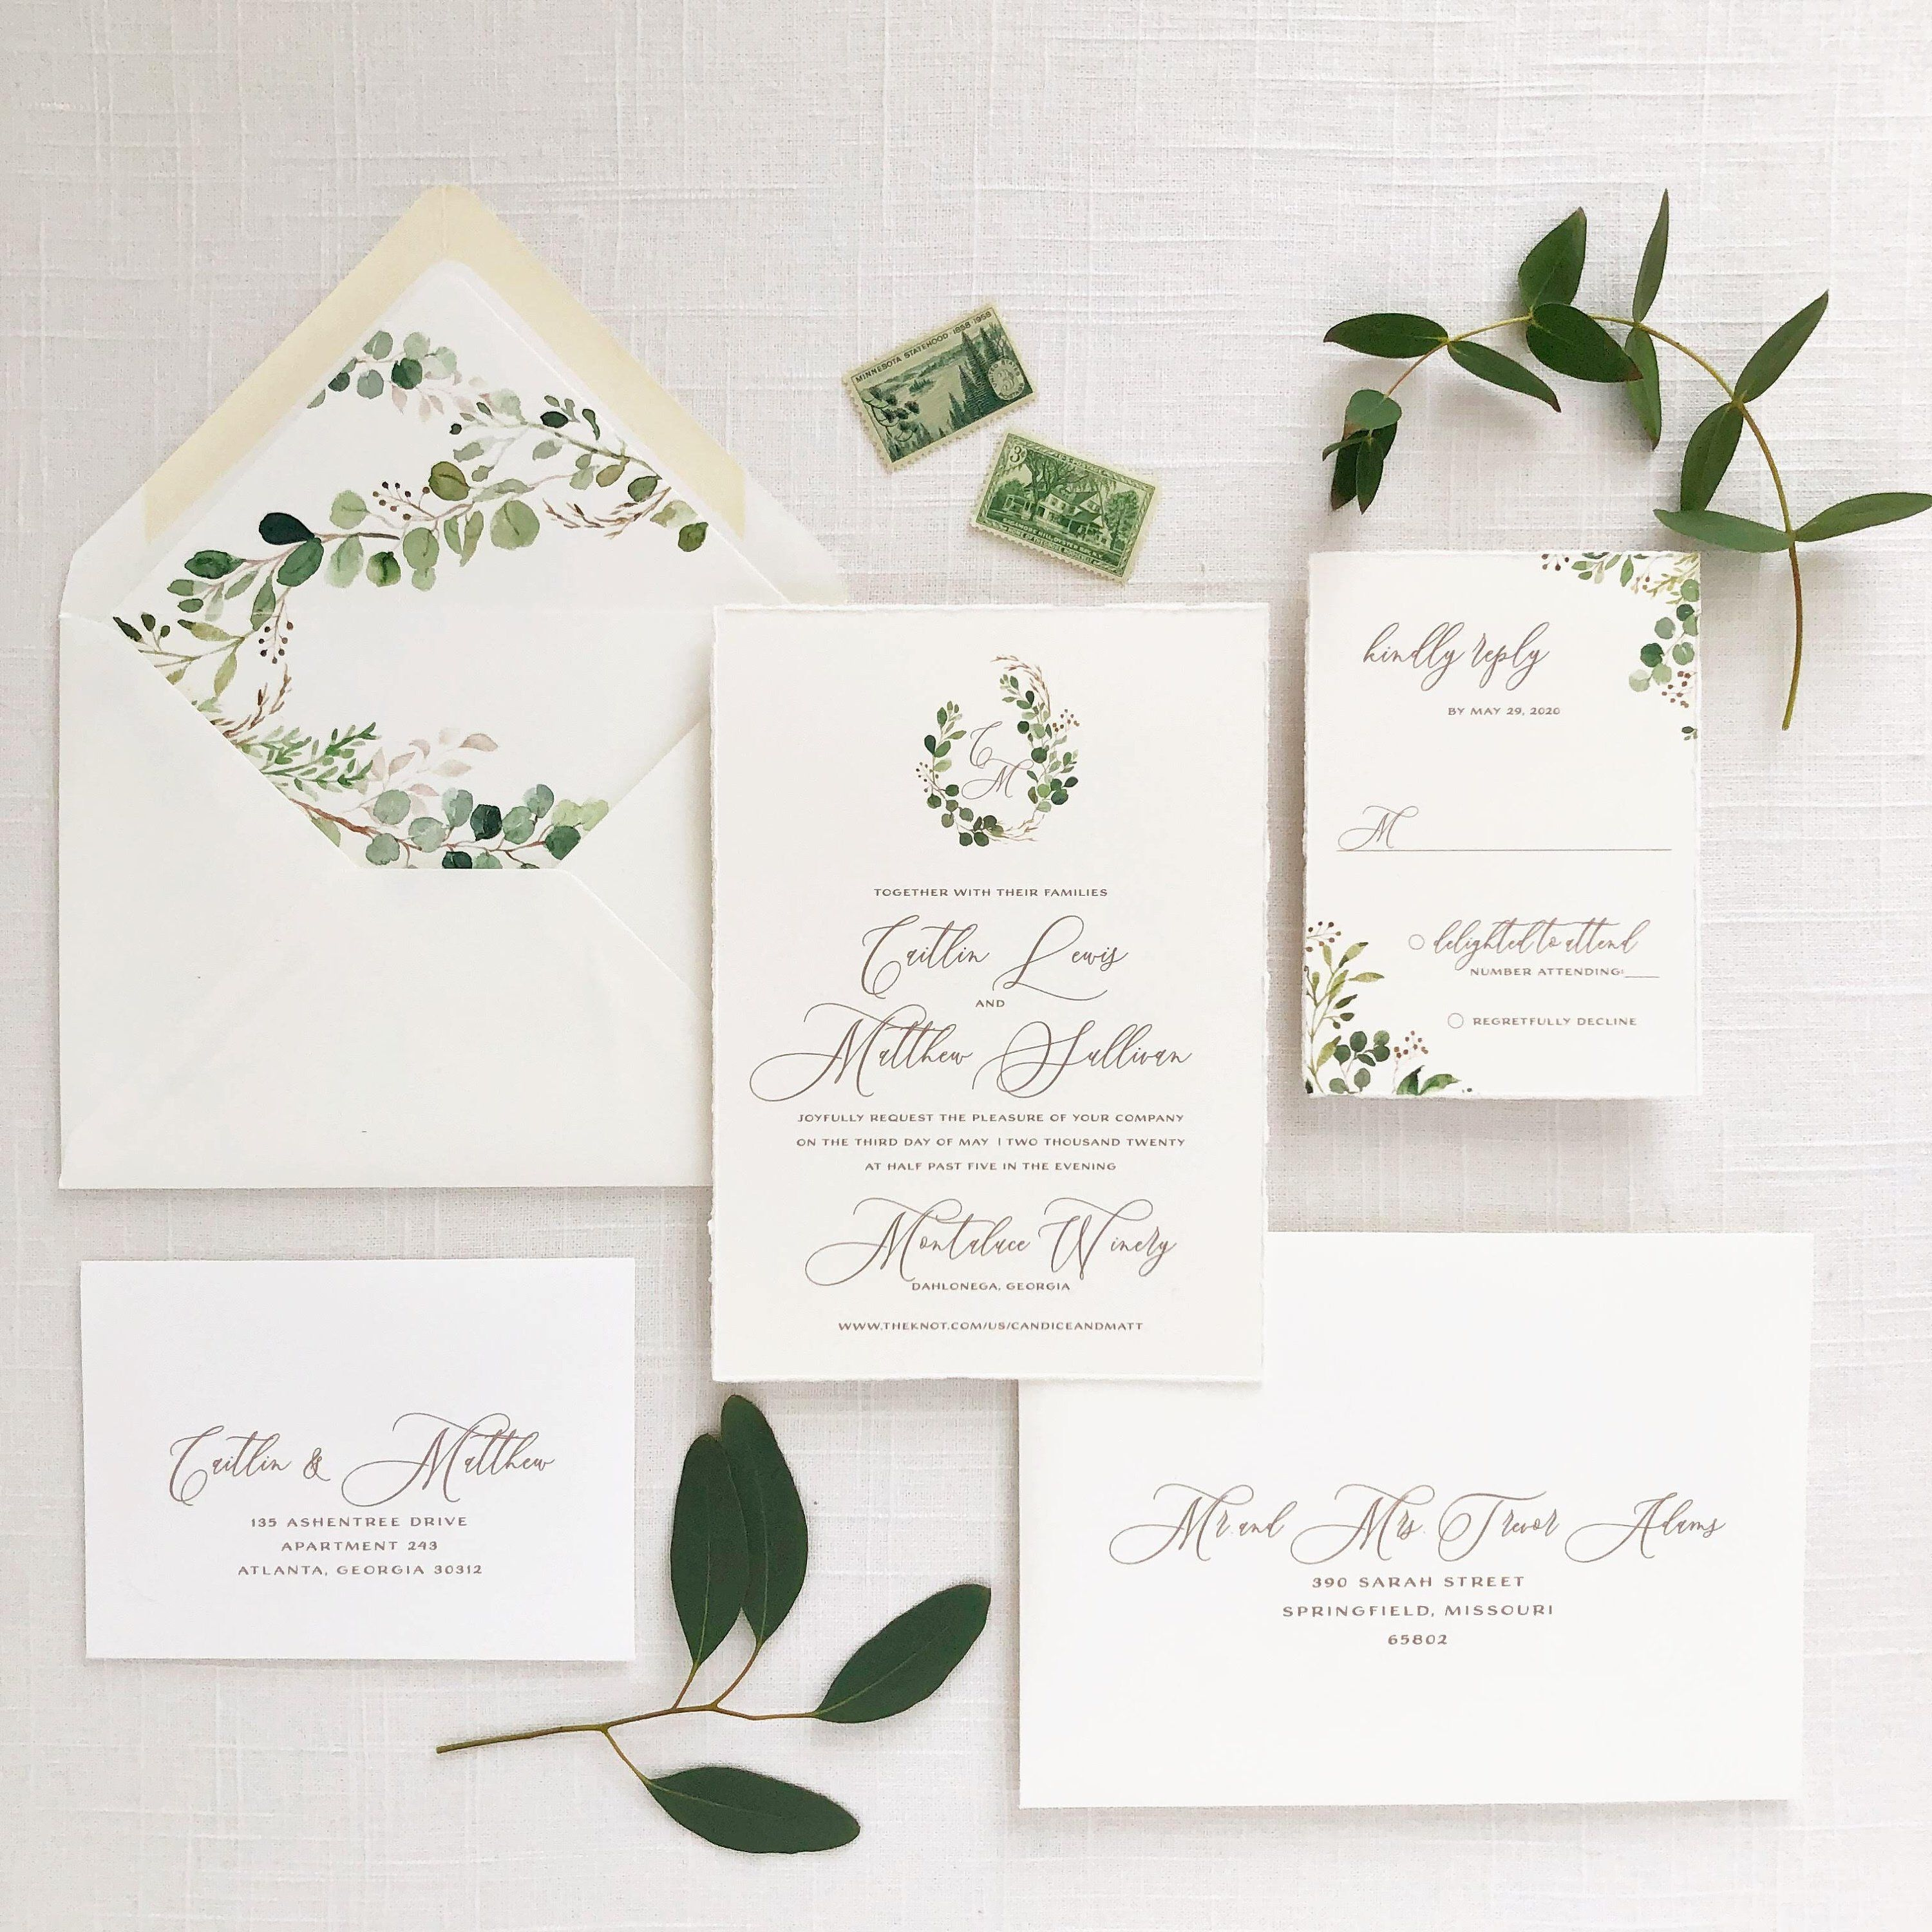 Greenery Crest Wedding Invitation Printed On Cotton Cardstock With